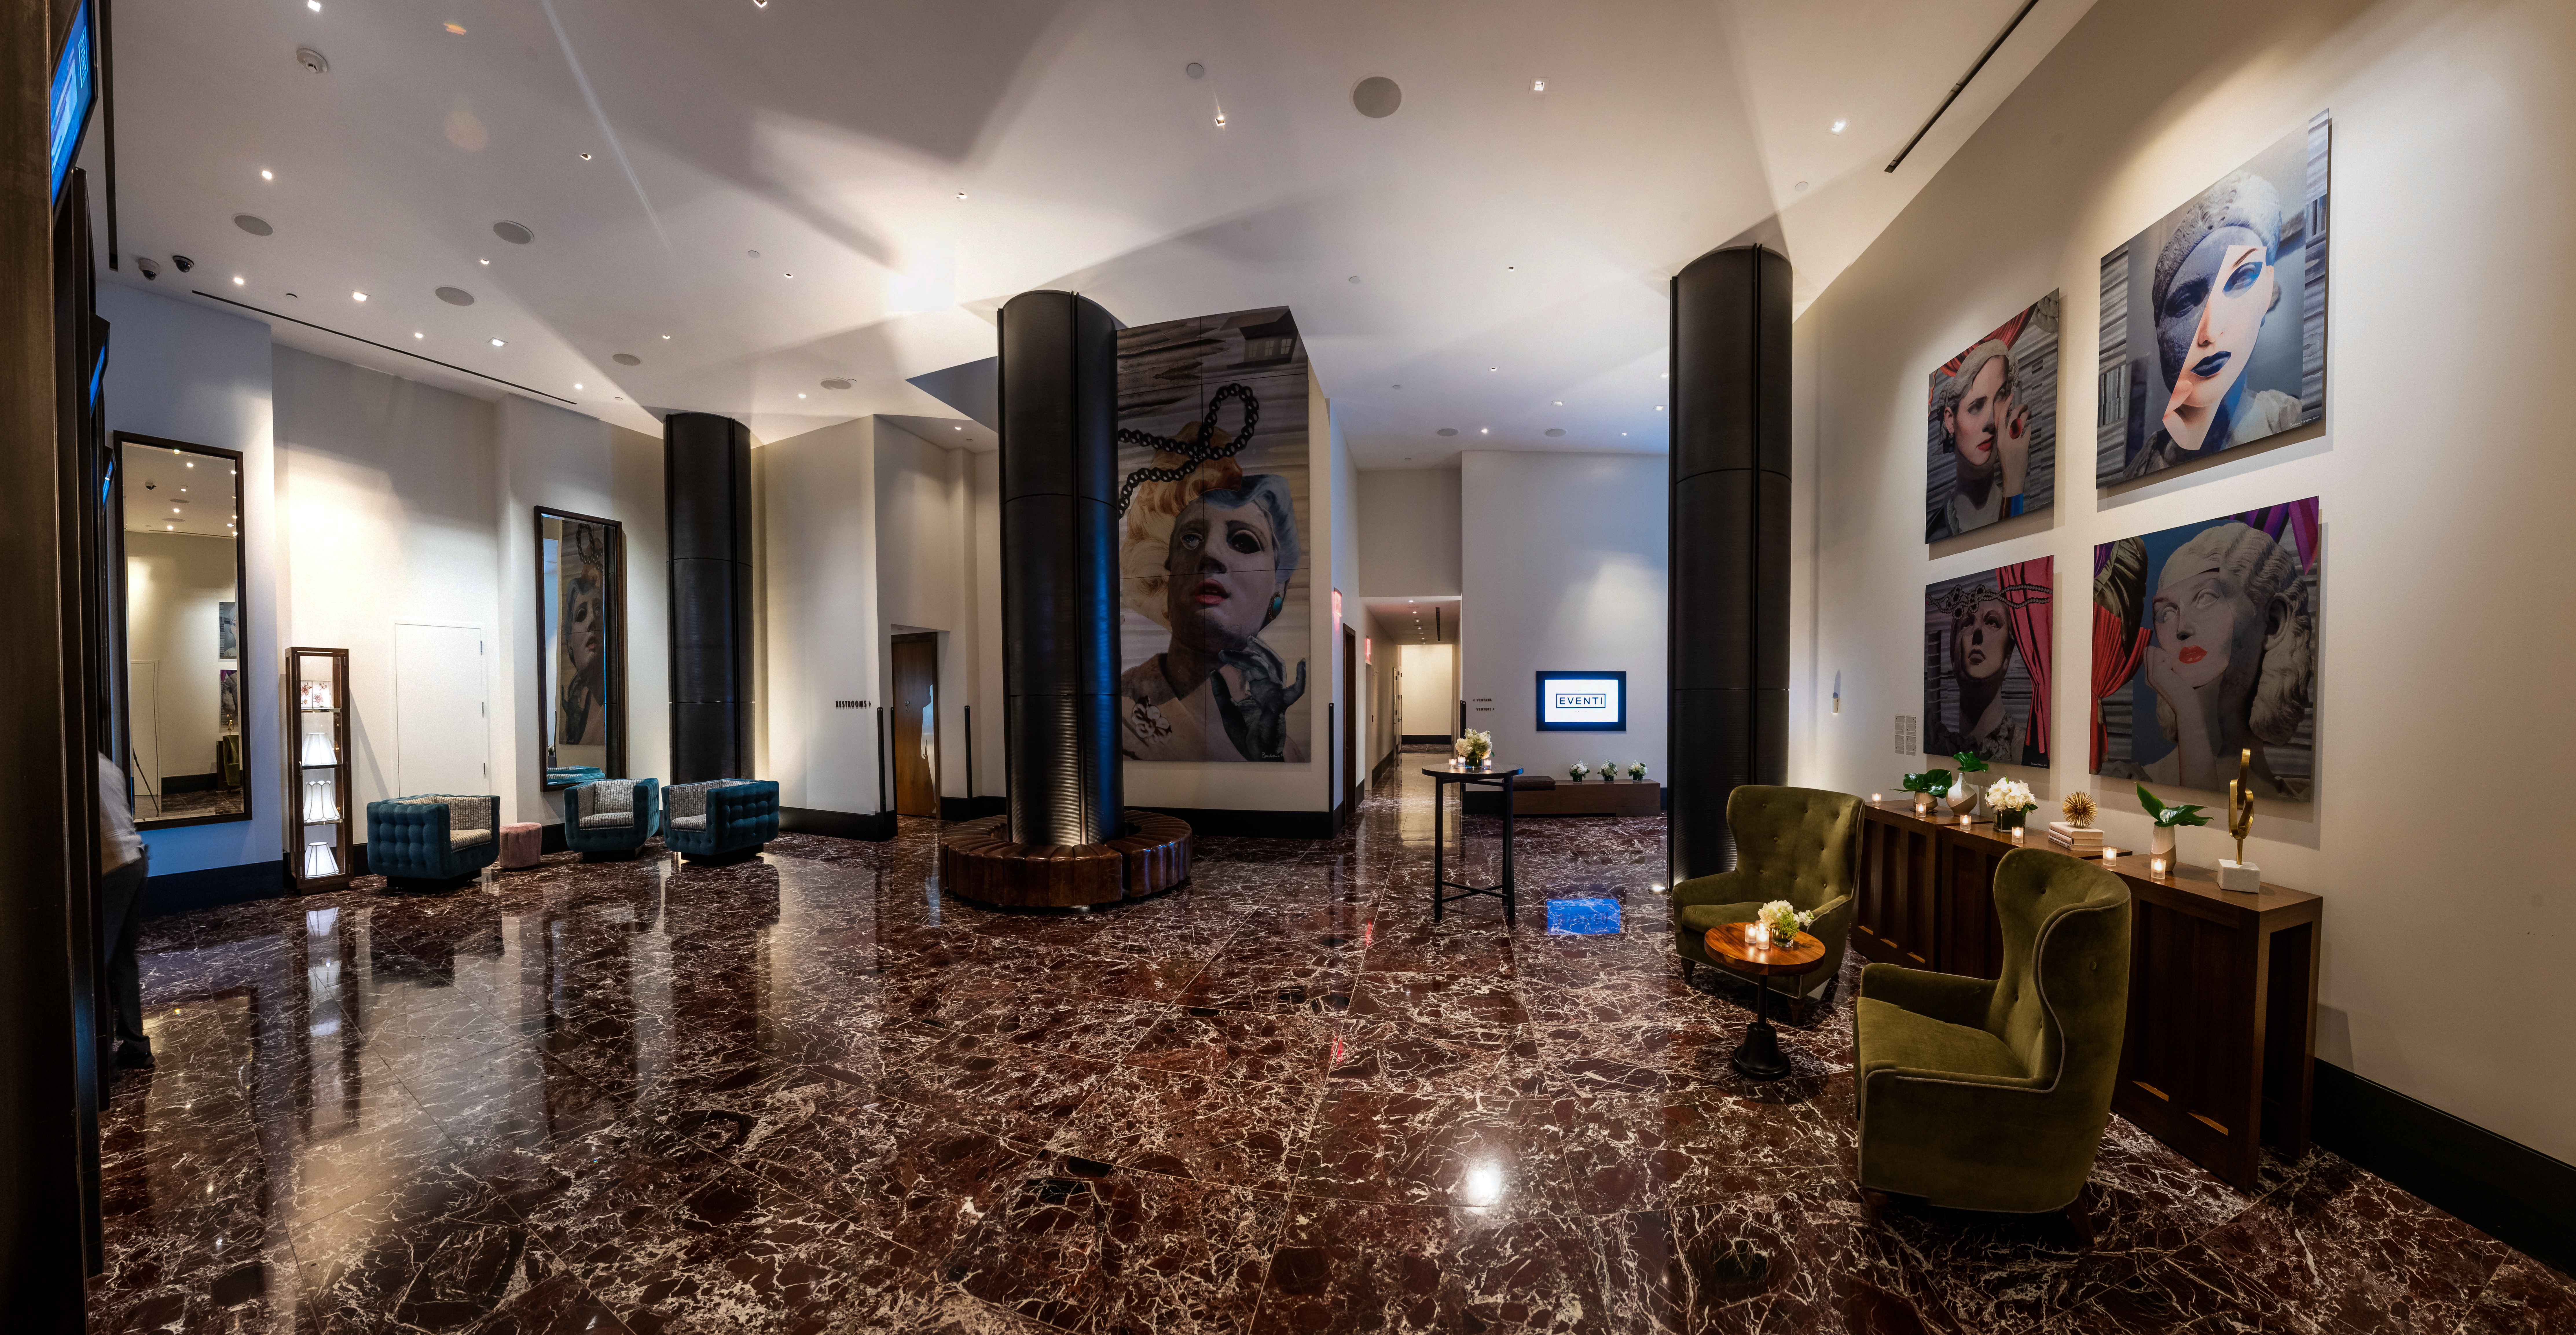 The Kimpton Hotel Eventi has 16 meeting rooms and event spaces.